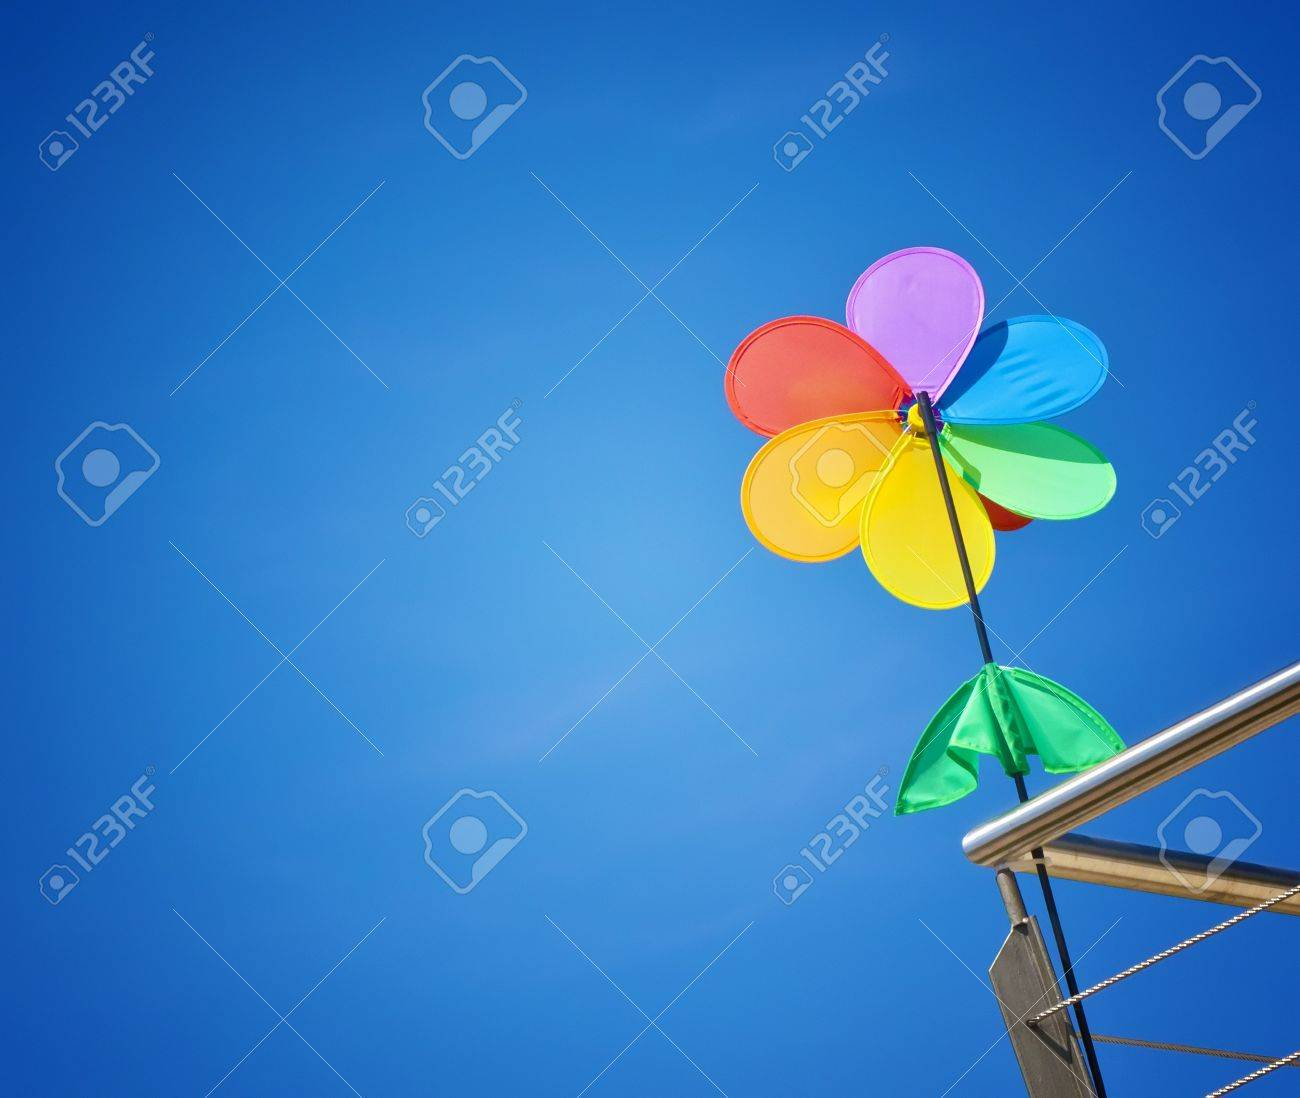 An image of a nice colorful wind game Stock Photo - 7429116